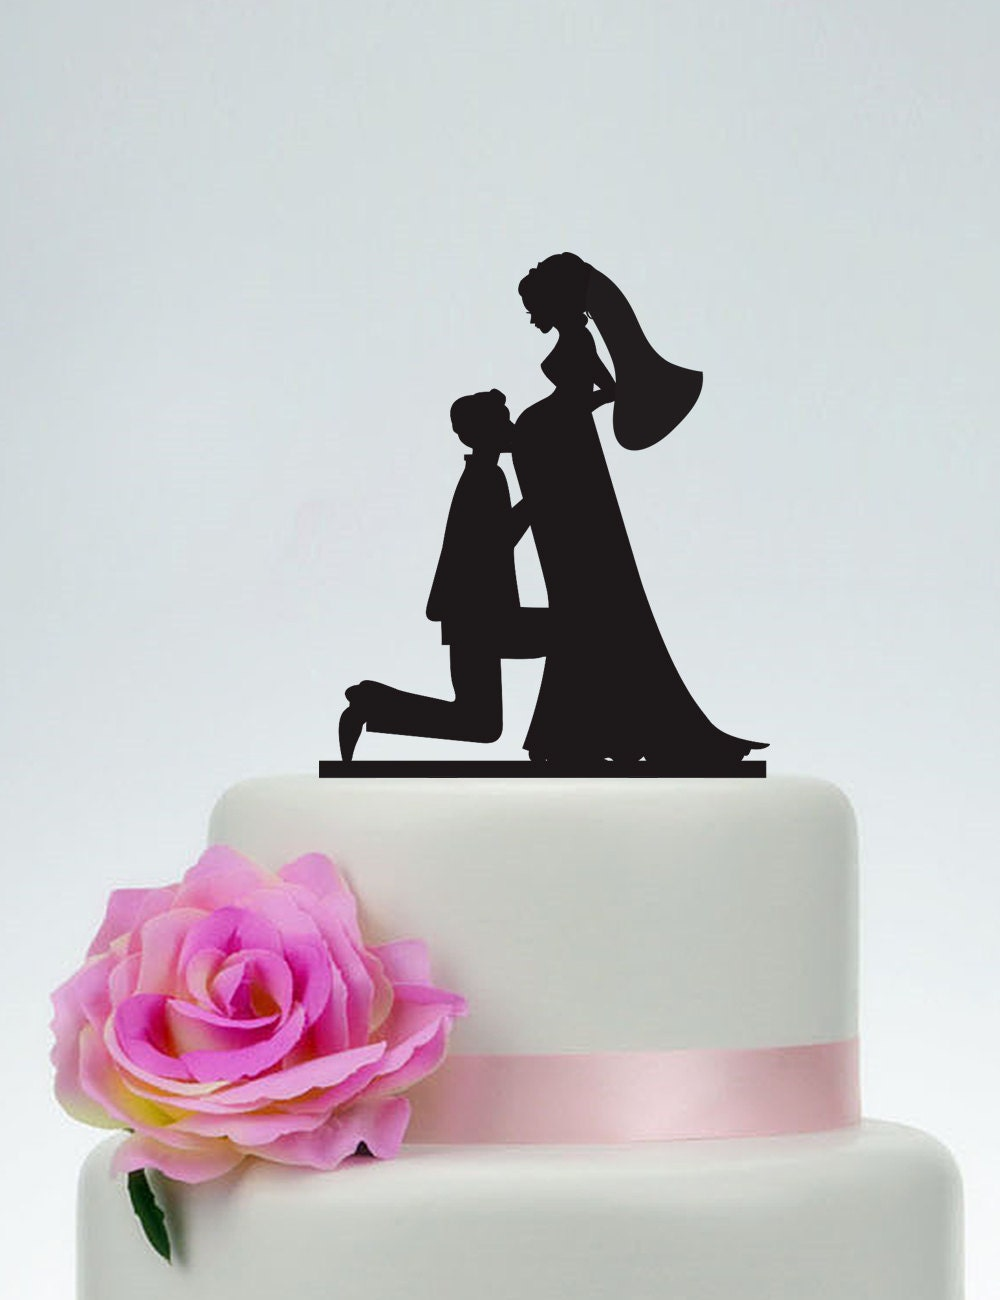 Pregnant wedding cake topperBride and Groom Silhouette Cake